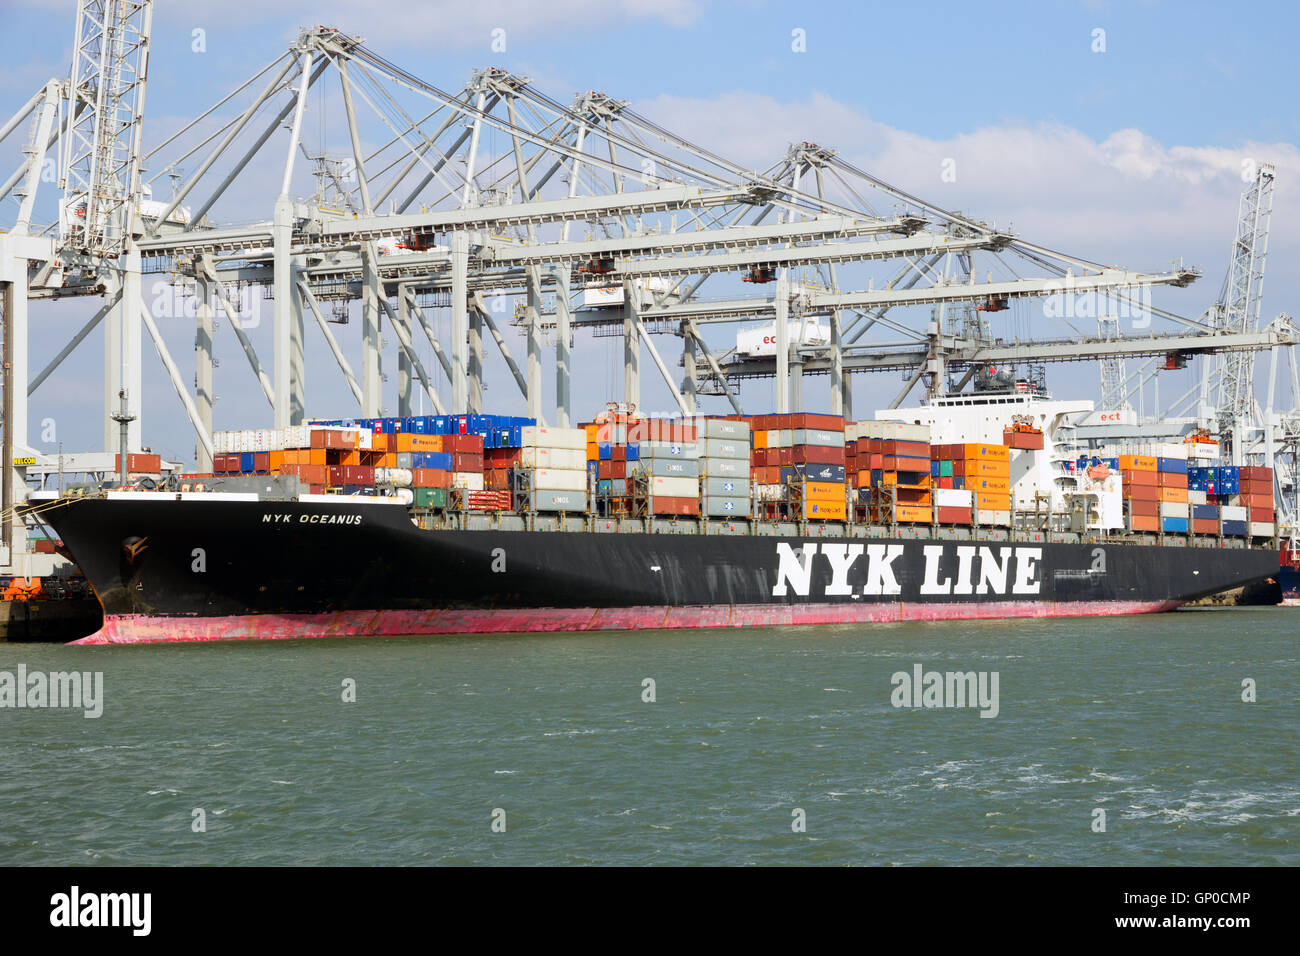 Container ship Nyk Oceanus from NYK Line moored at a container terminal in the Port of Ro - Stock Image